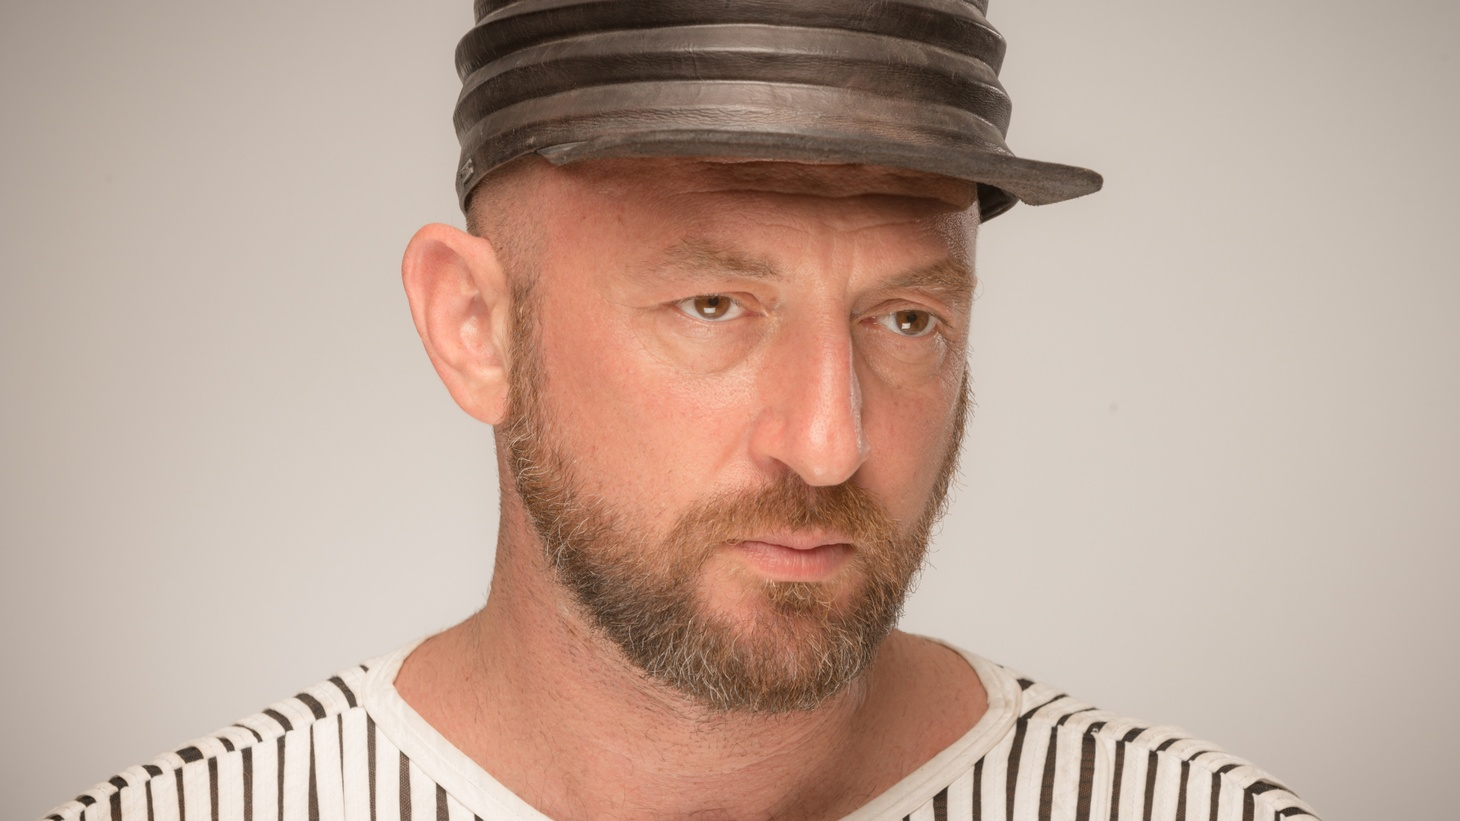 Alongside his own DJ and production career, Damian Lazarus also acts as curator of musical events such as Day Zero, Get Lost, and Rebel Rave, and even his record label Crosstown Rebels.